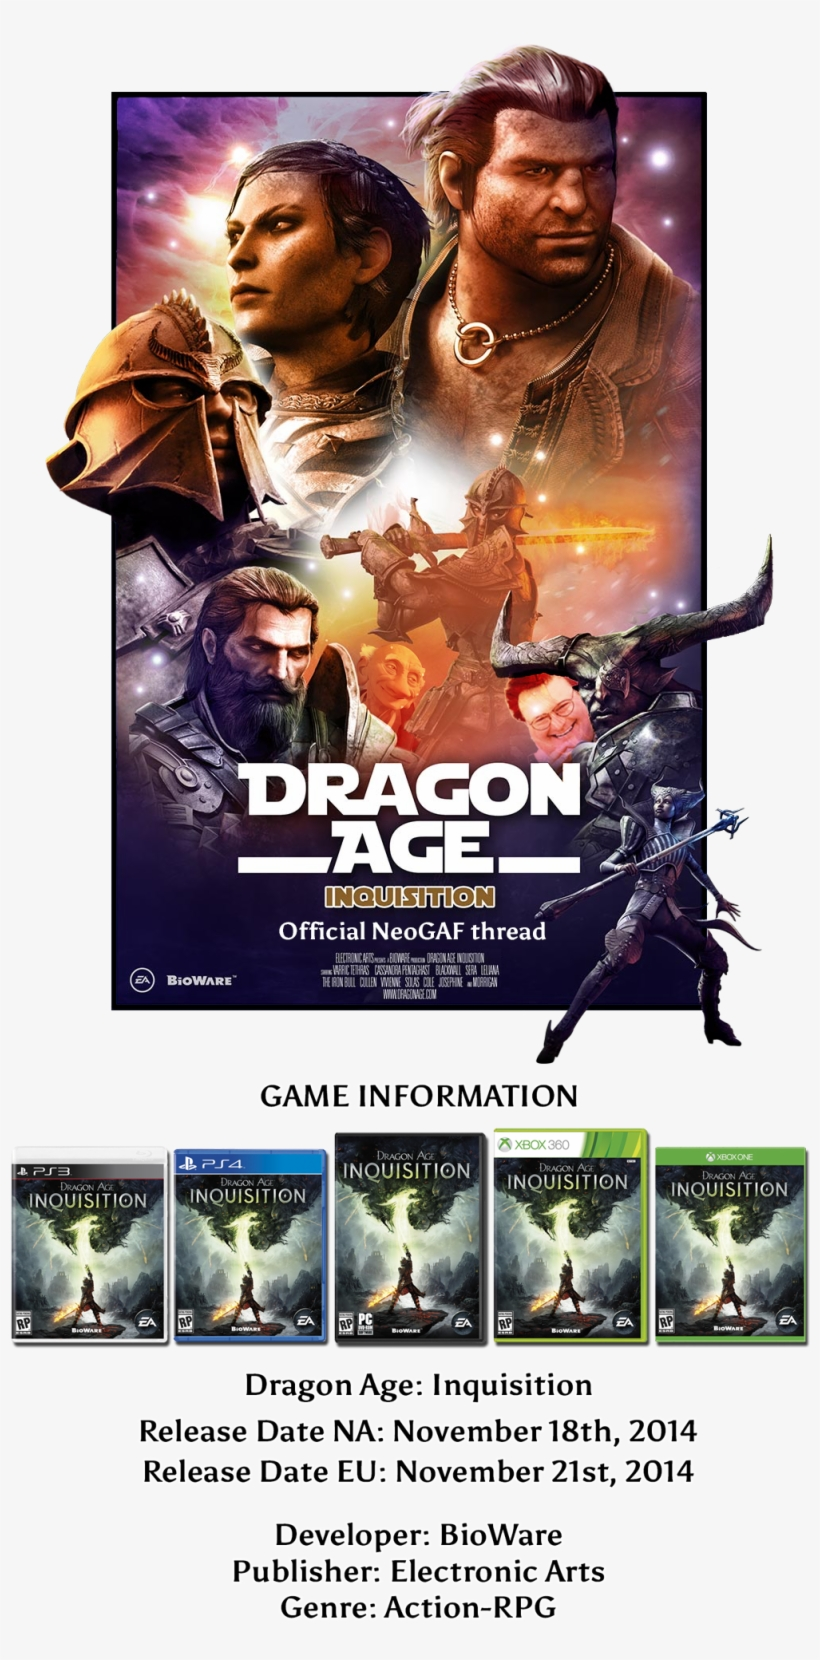 Dragon Age Inquisition Takes Place In A Semi-open World - Dragon Age Inquisition Xbox 360 Ea Games, transparent png #3271557